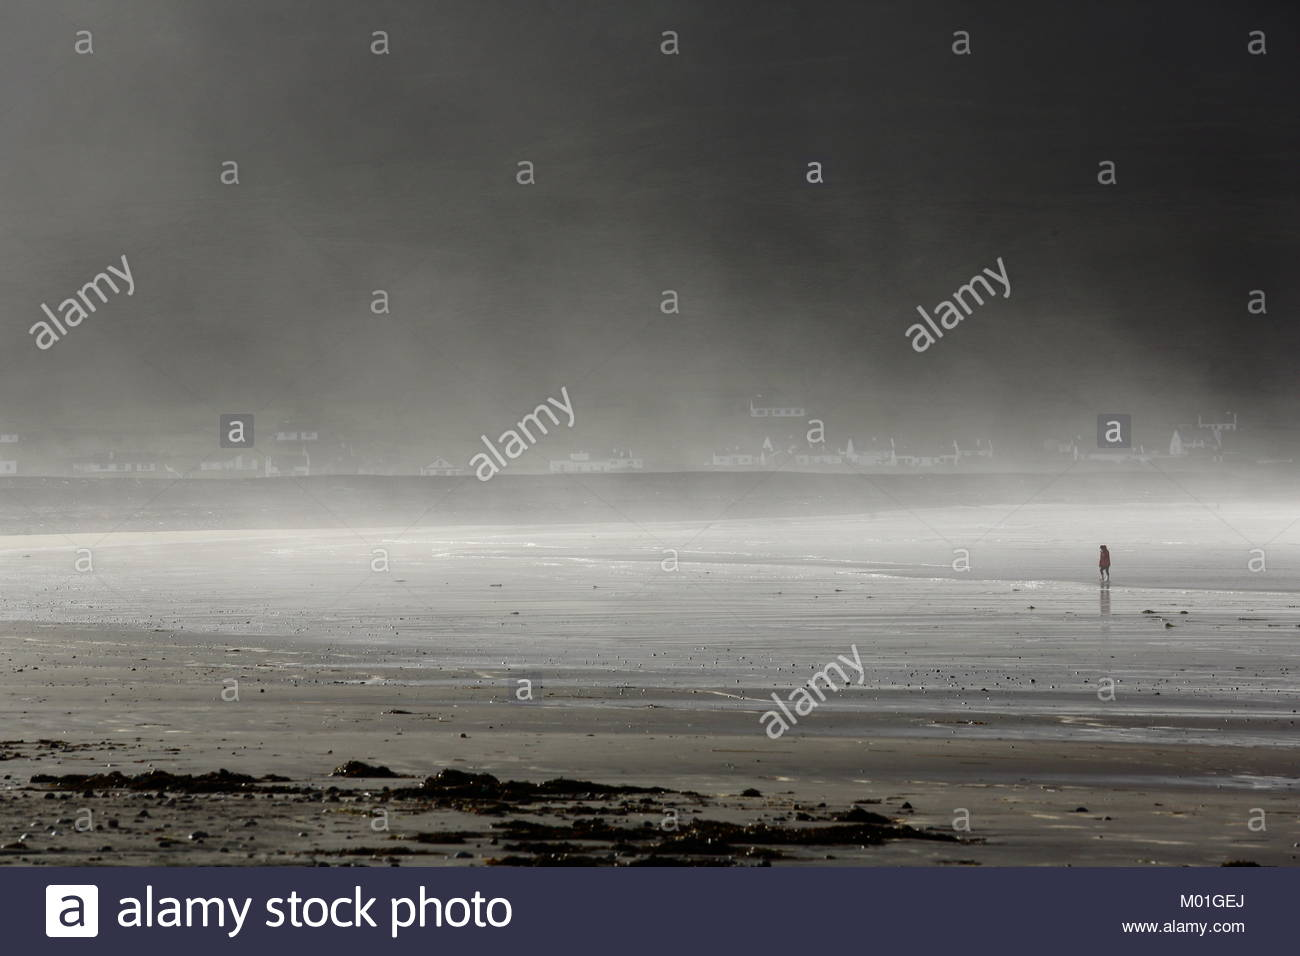 Mist in from the Atlantic Ocean sweeps across a beach on Achill Island in County Mayo, Ireland - Stock Image